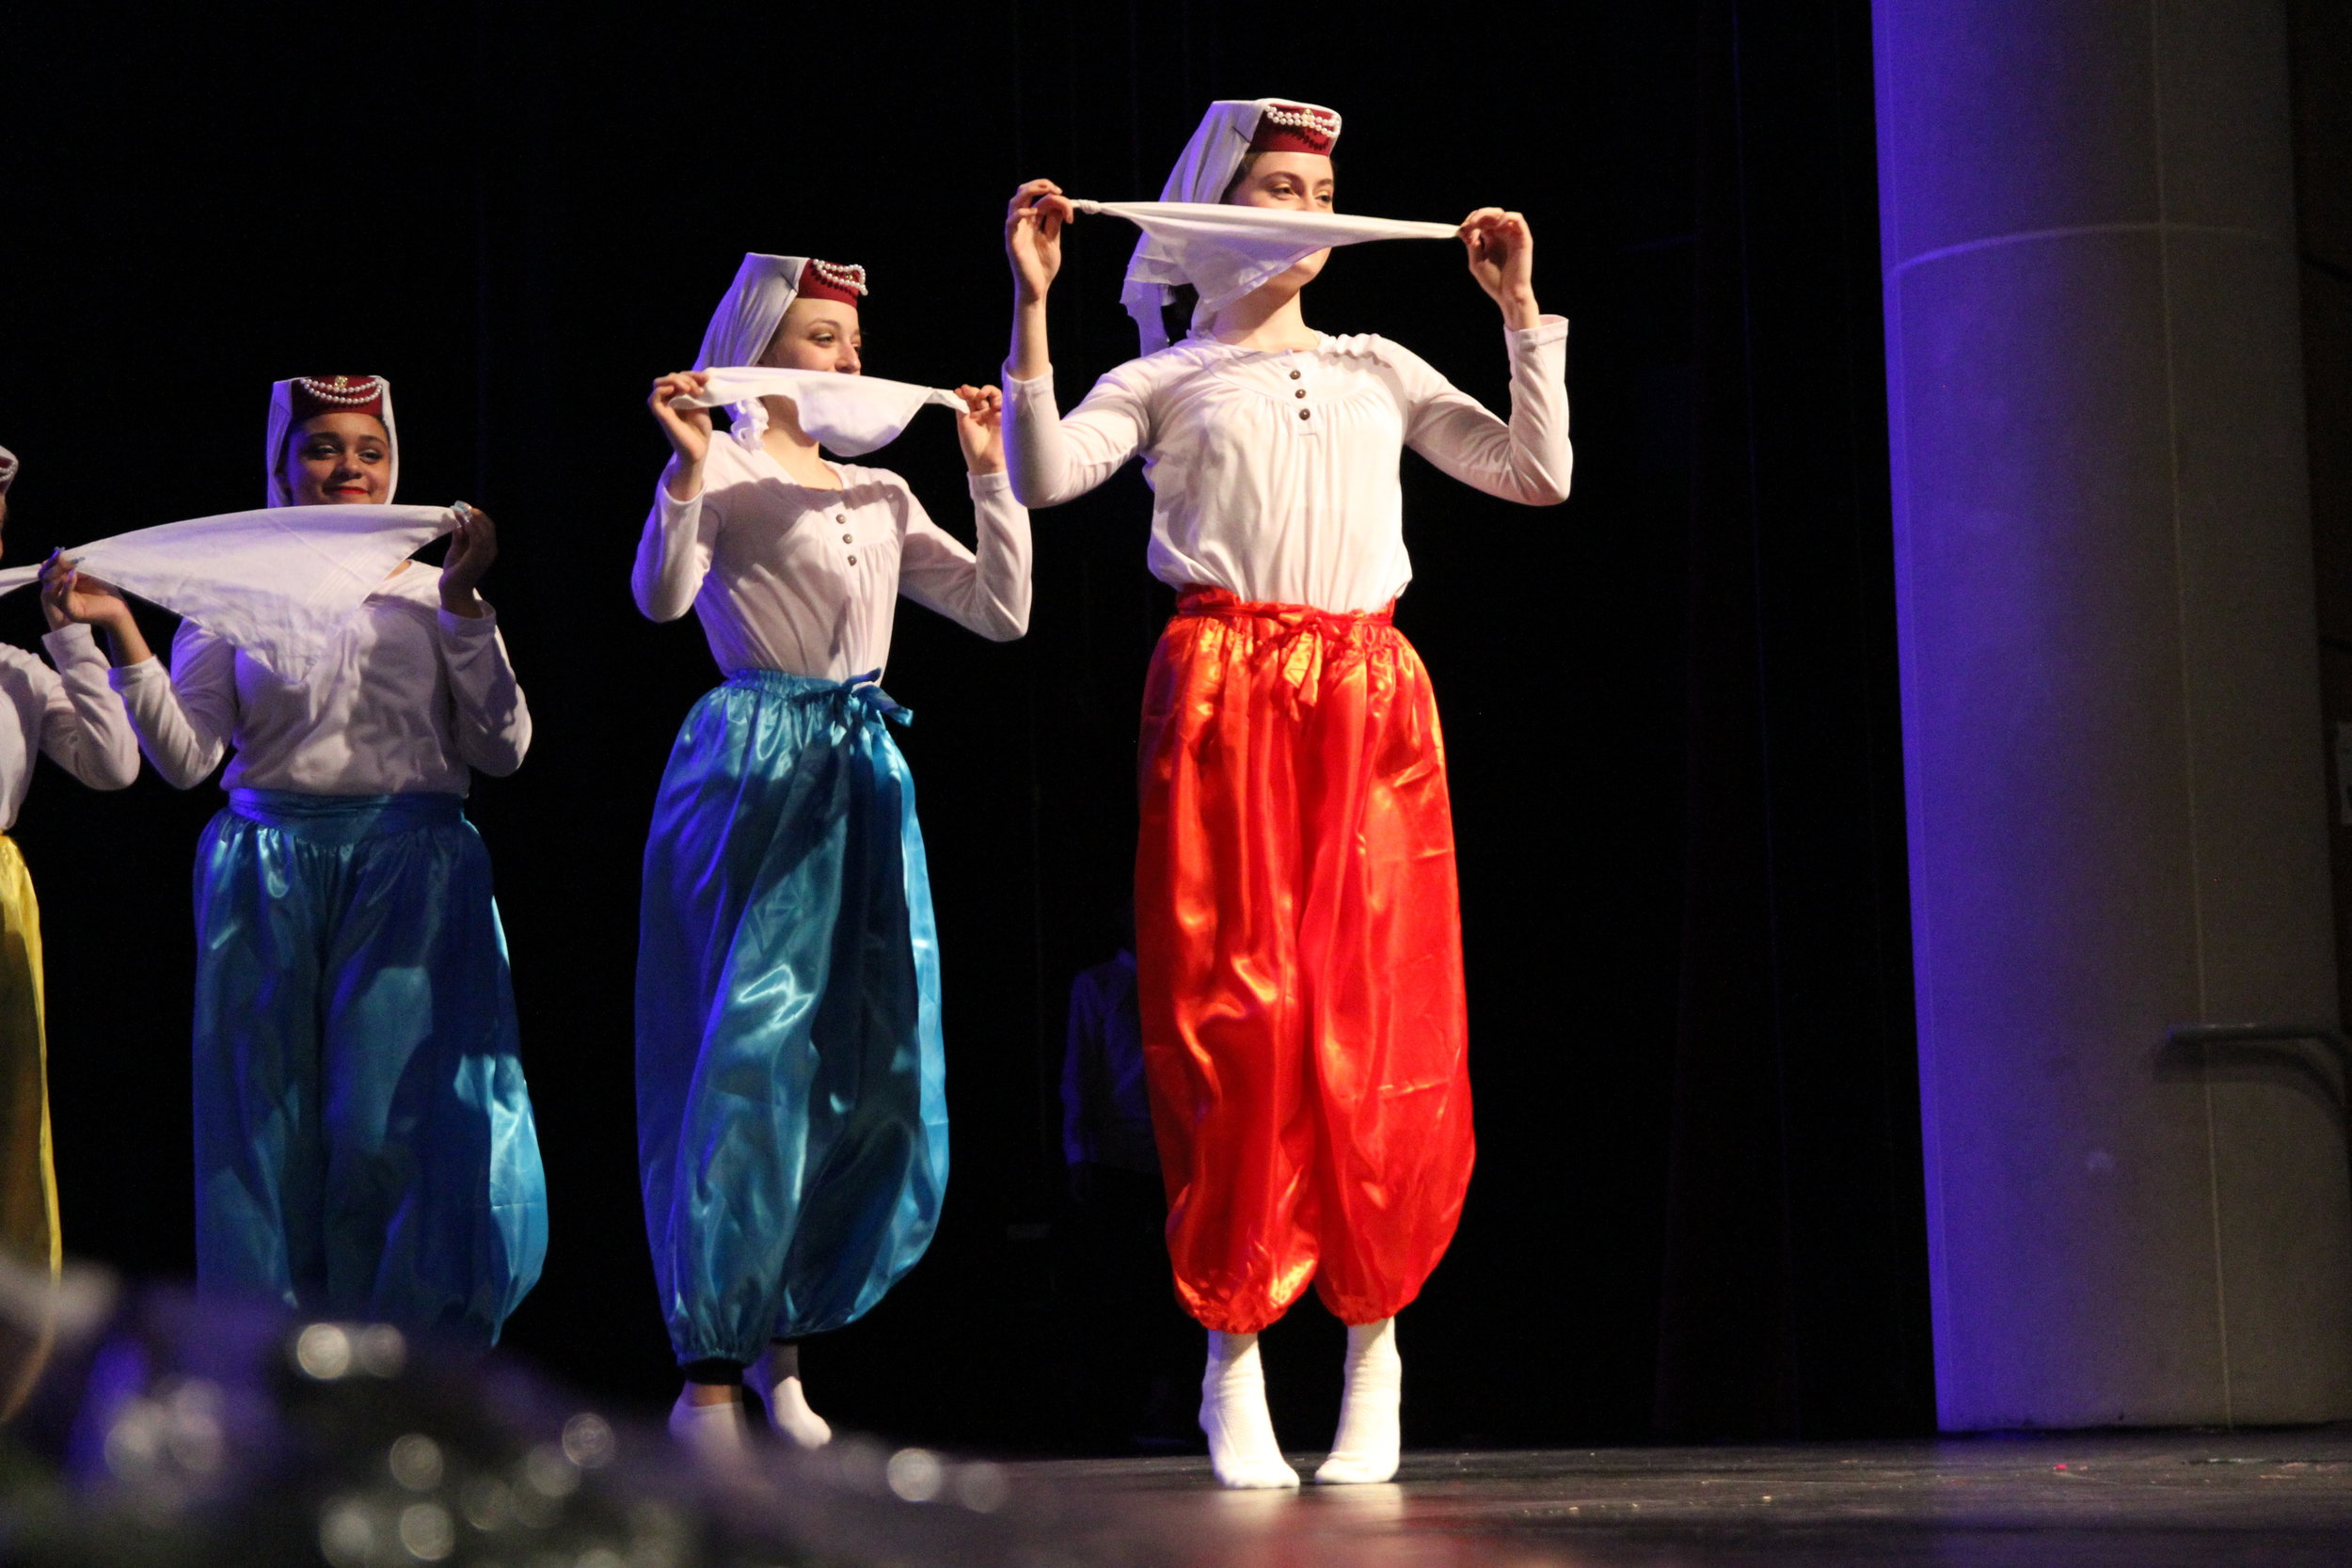 Edina Hadzic, Adv. 905, and her fellow dancers float around the stage in their brightly colored Harem pants as they hide their faces behind handkerchiefs